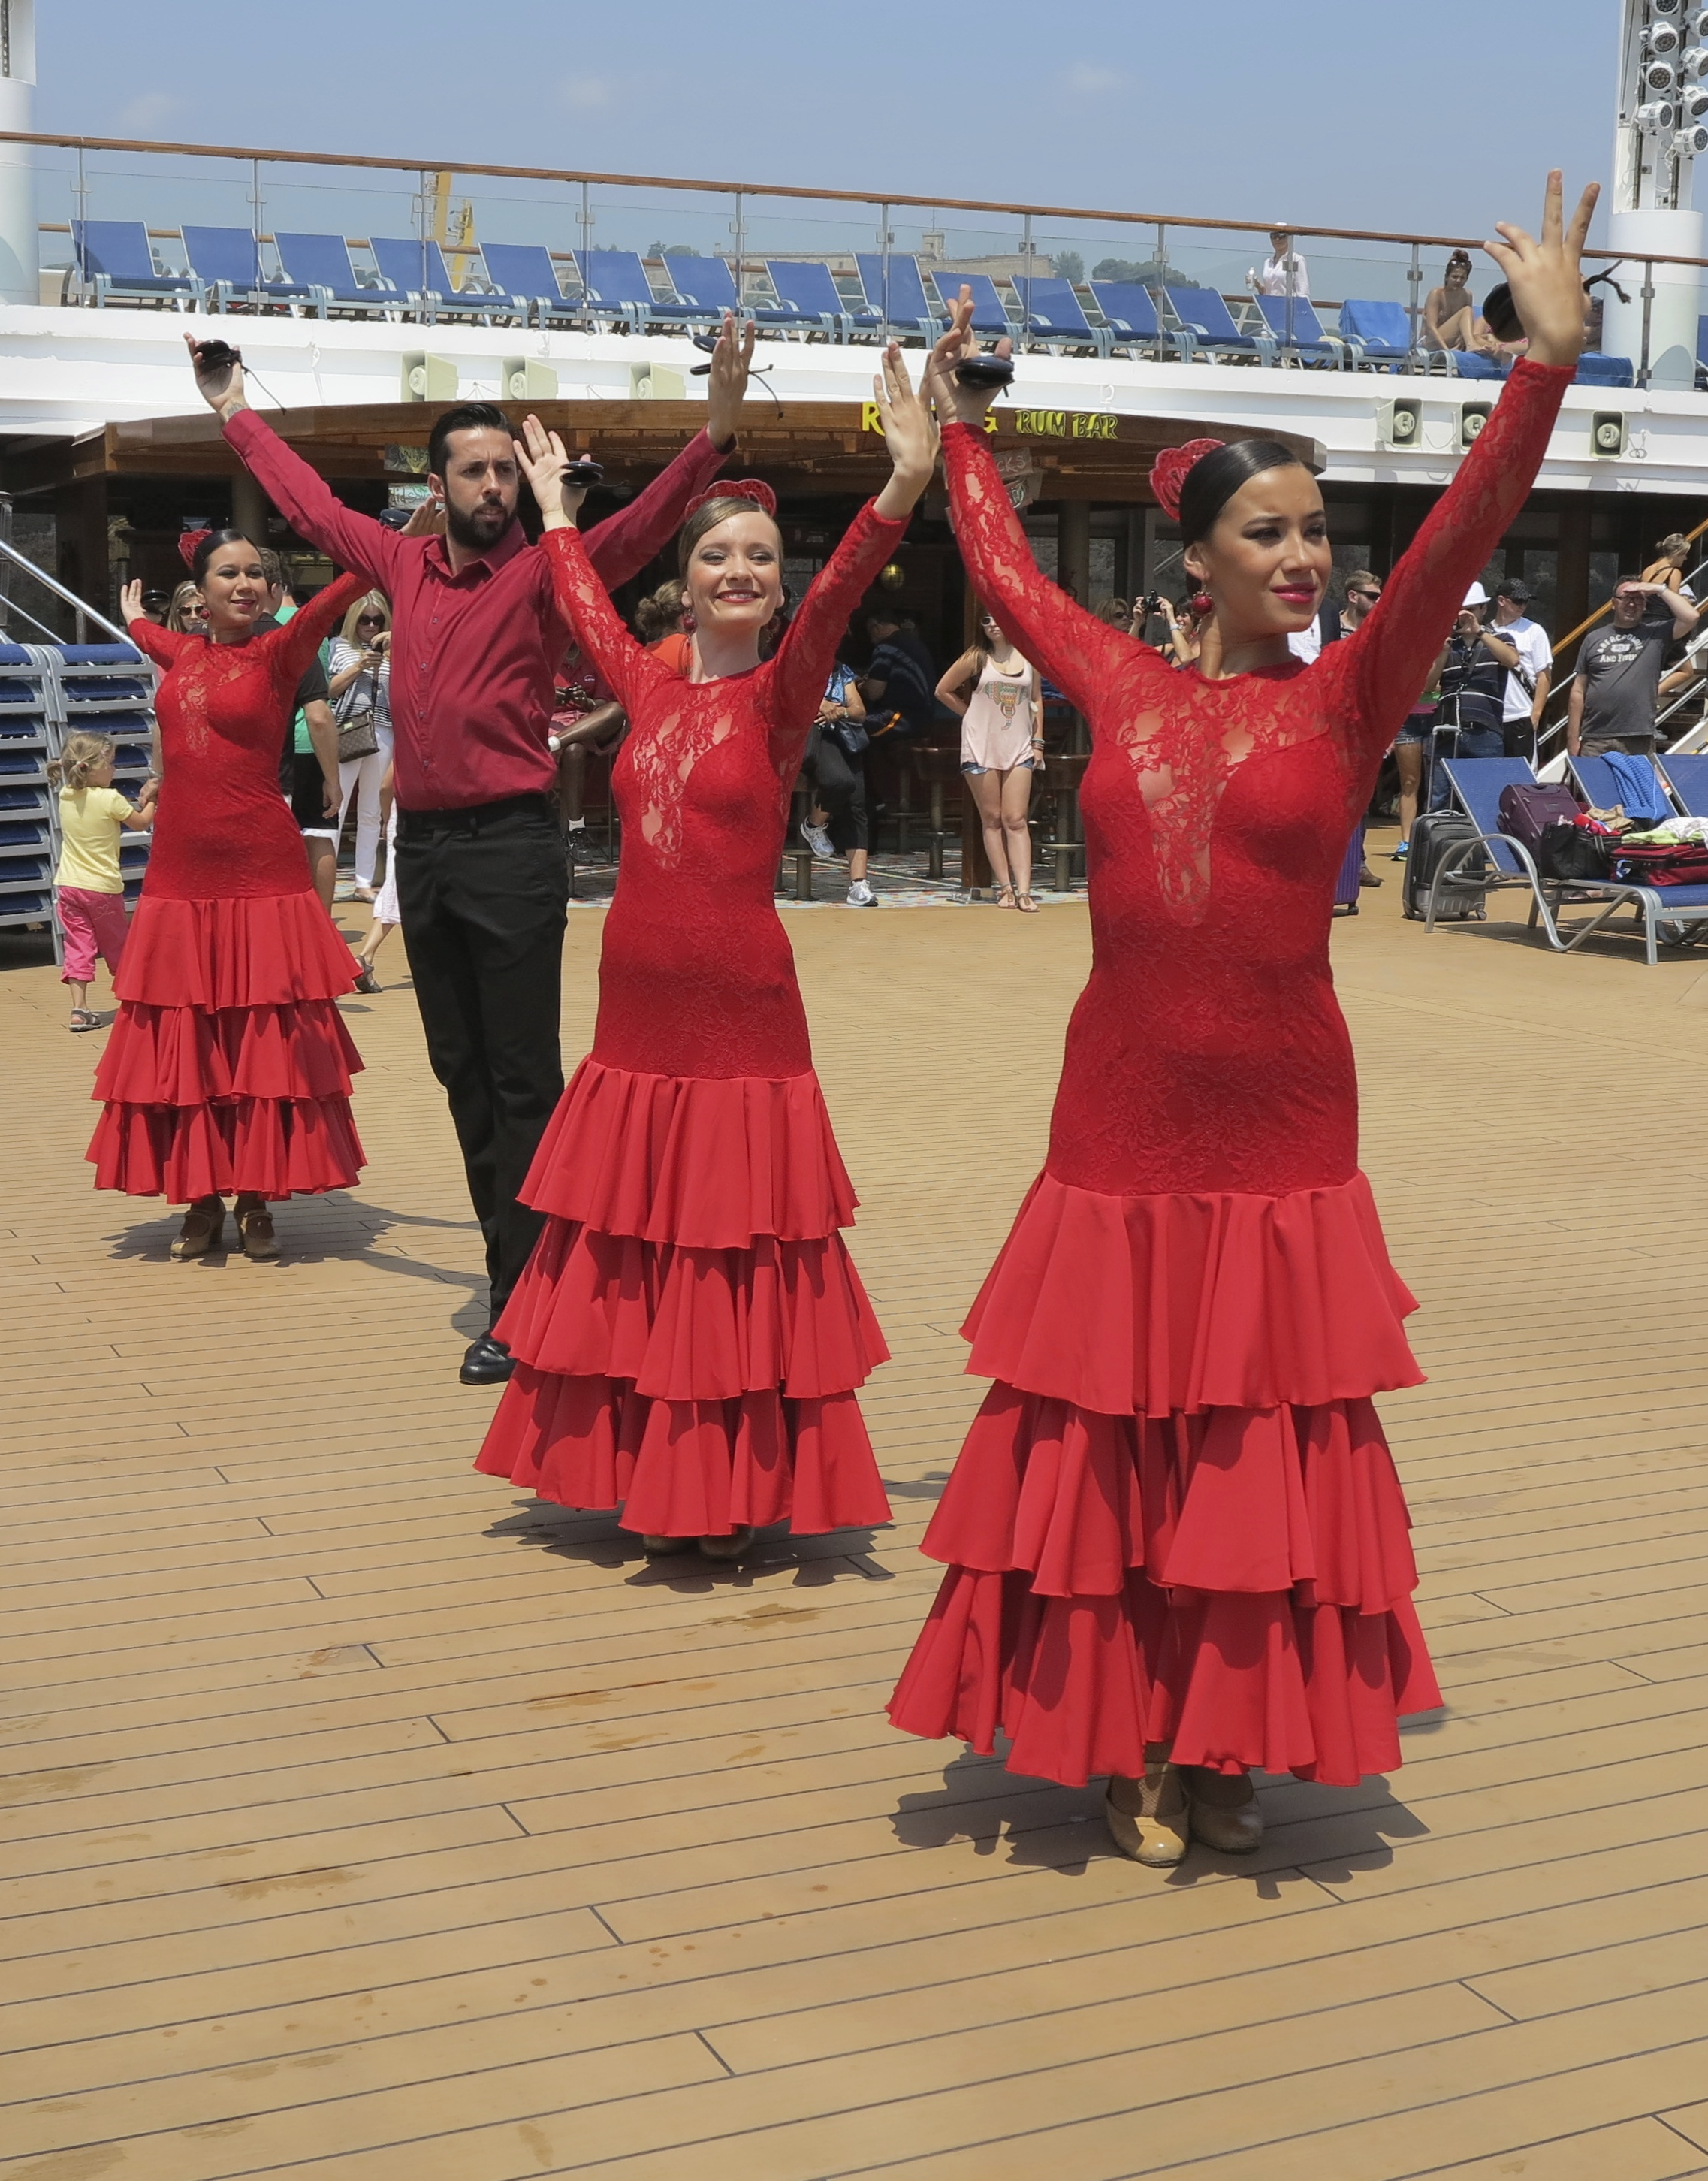 Ole! Flamenco dancers entertain on deck as we leave Barcelona